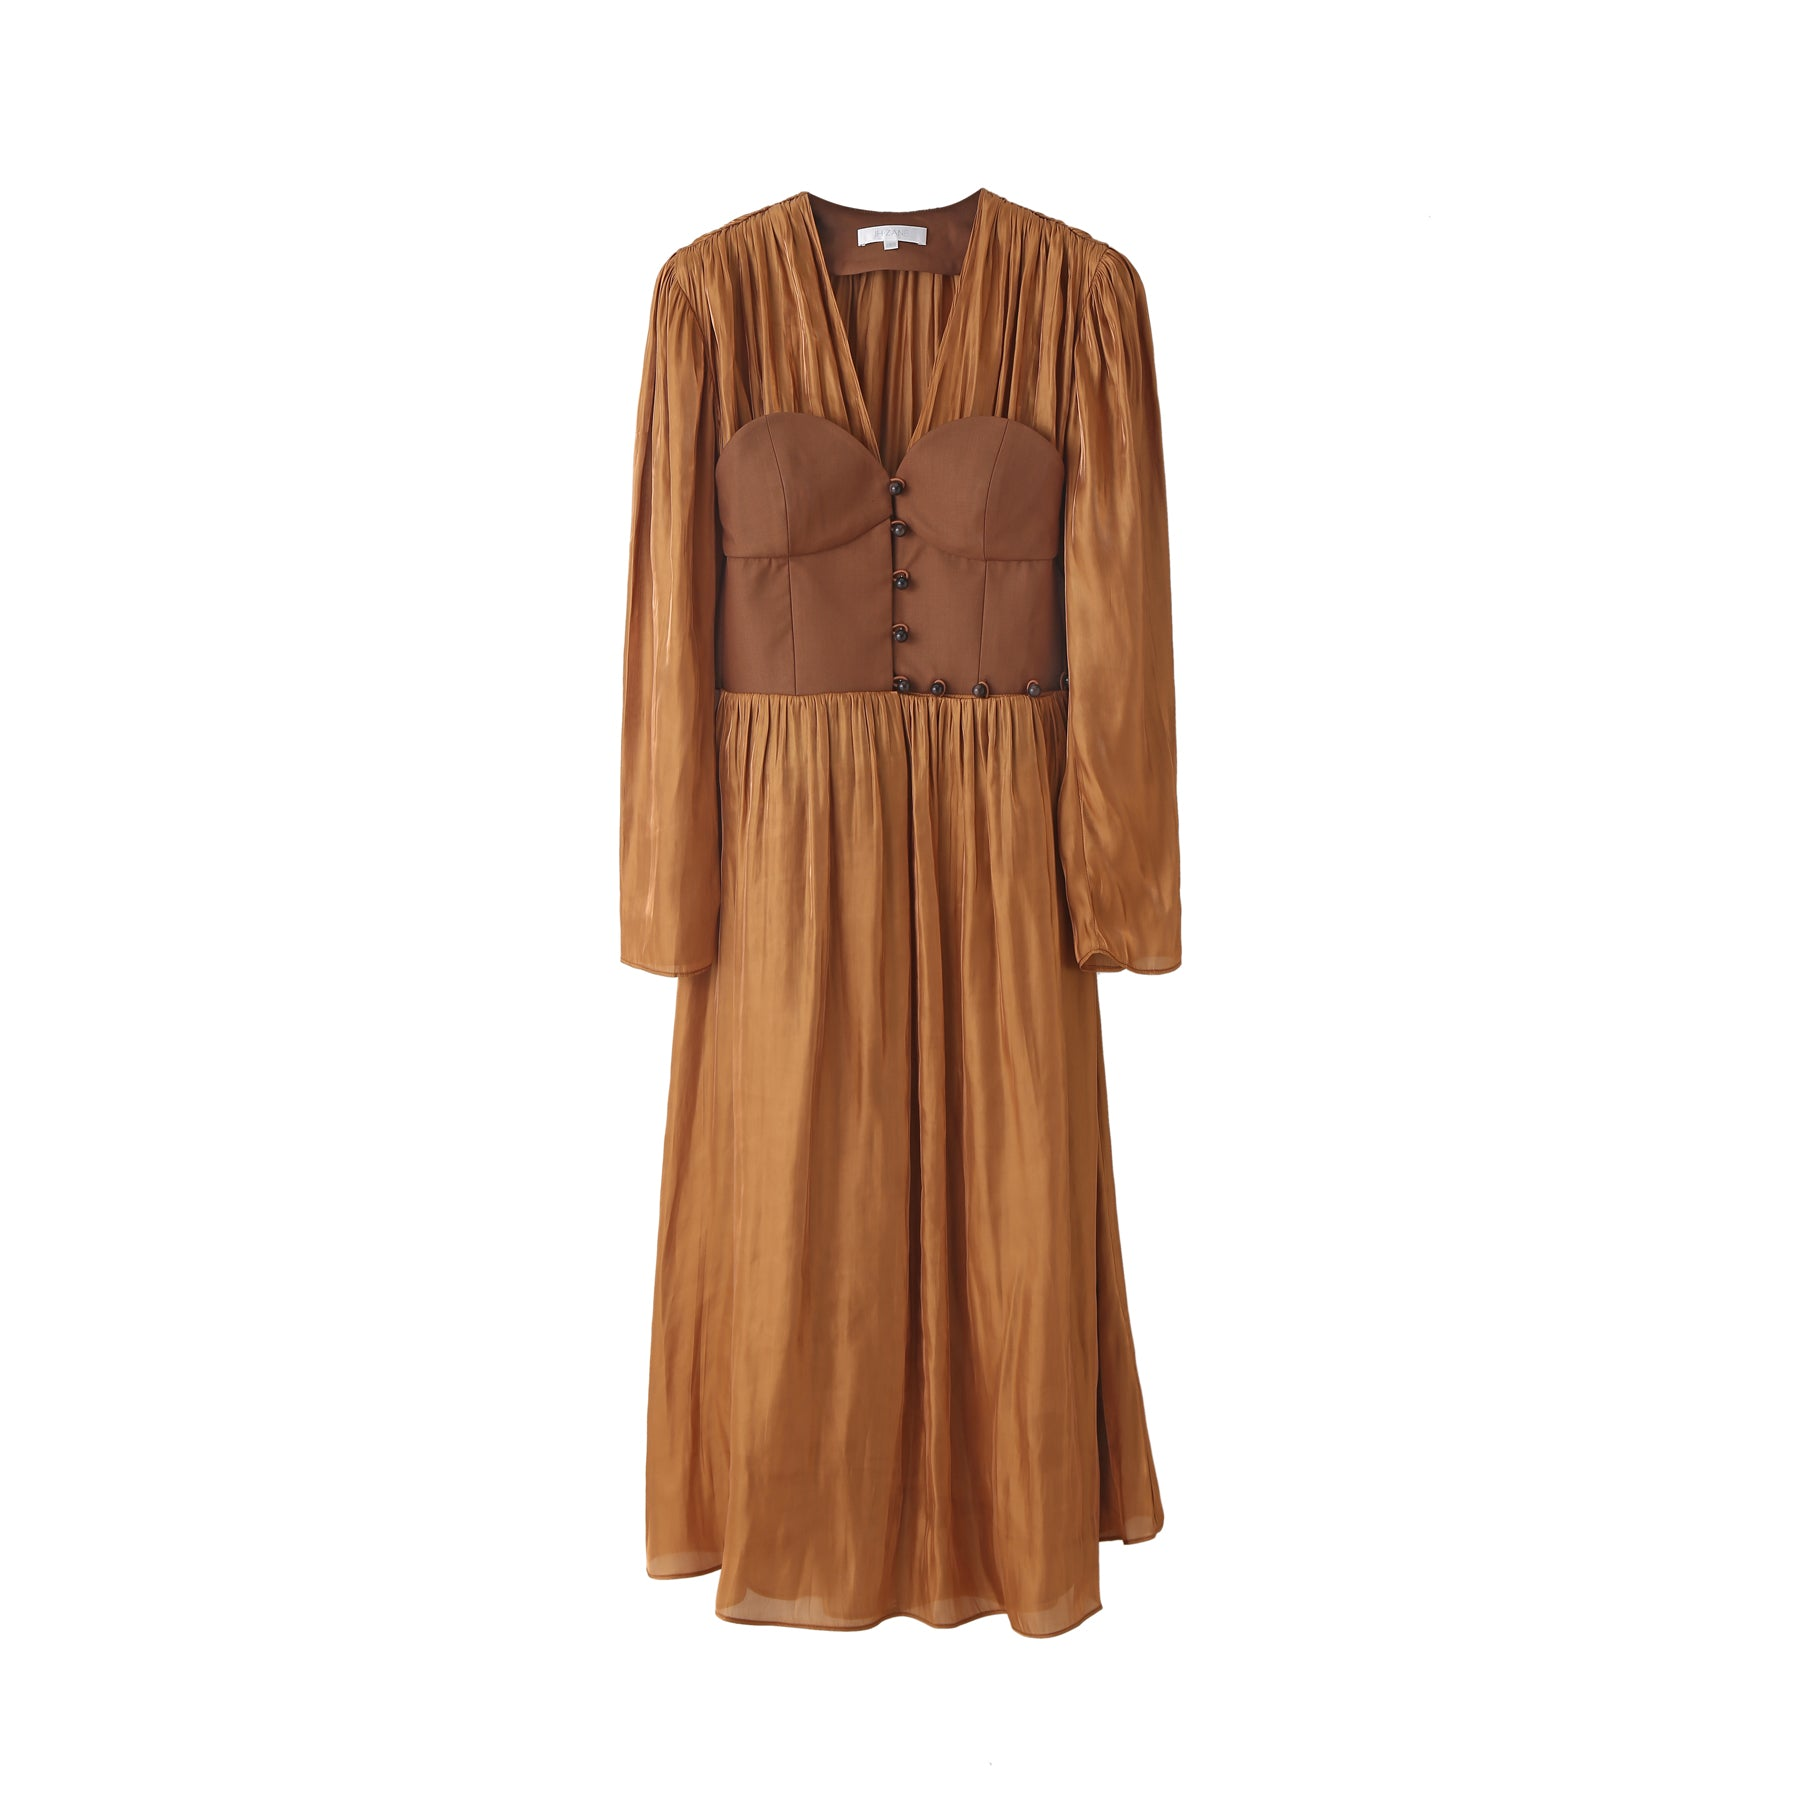 Winifred Corset Dress in Copper